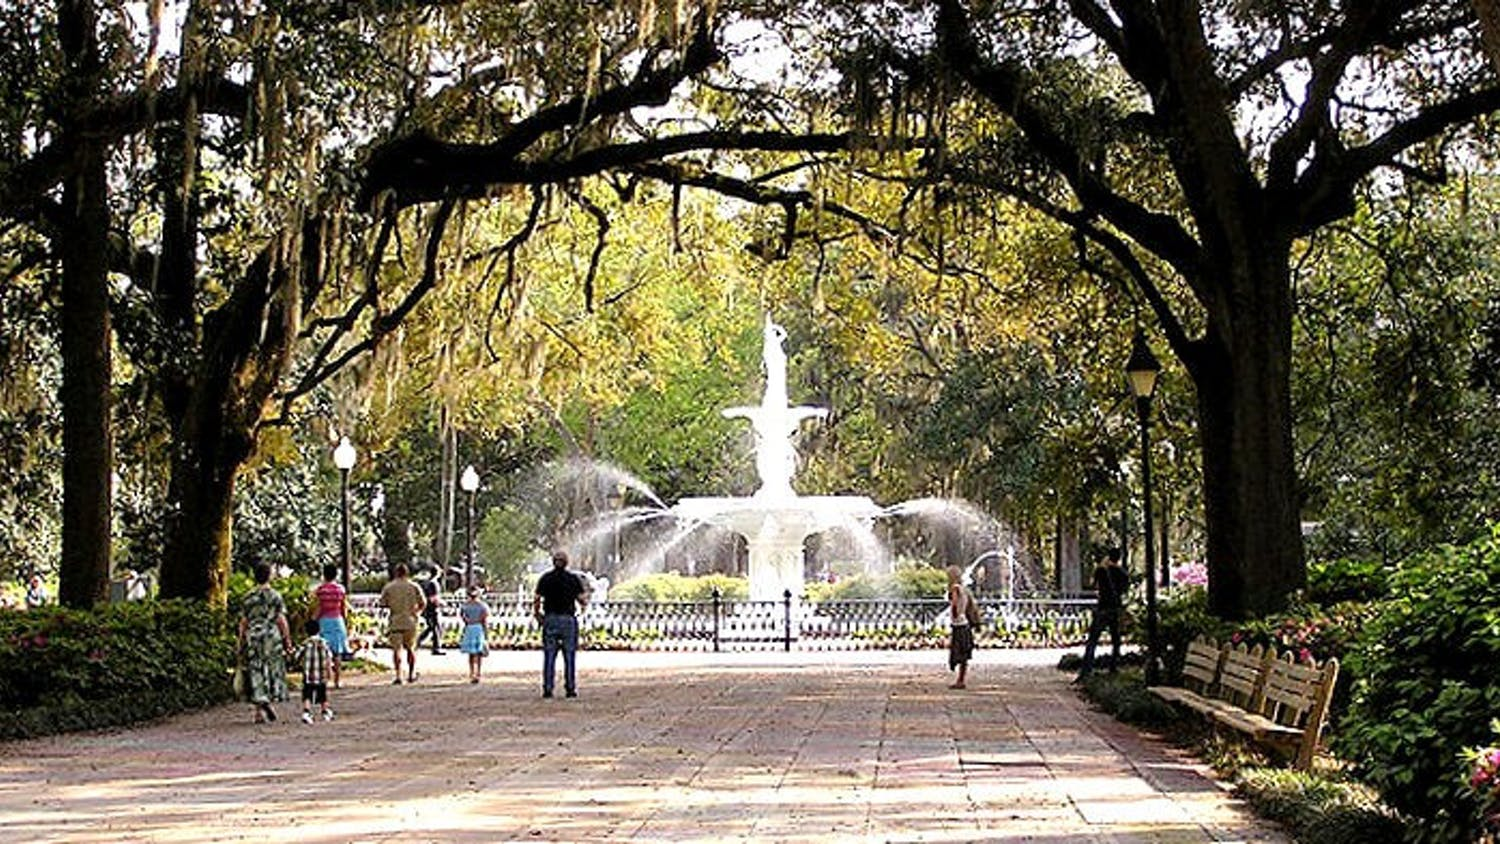 In Savannah, history, architecture and natural beauty all intersect to create a cultural center on par with any in the world.